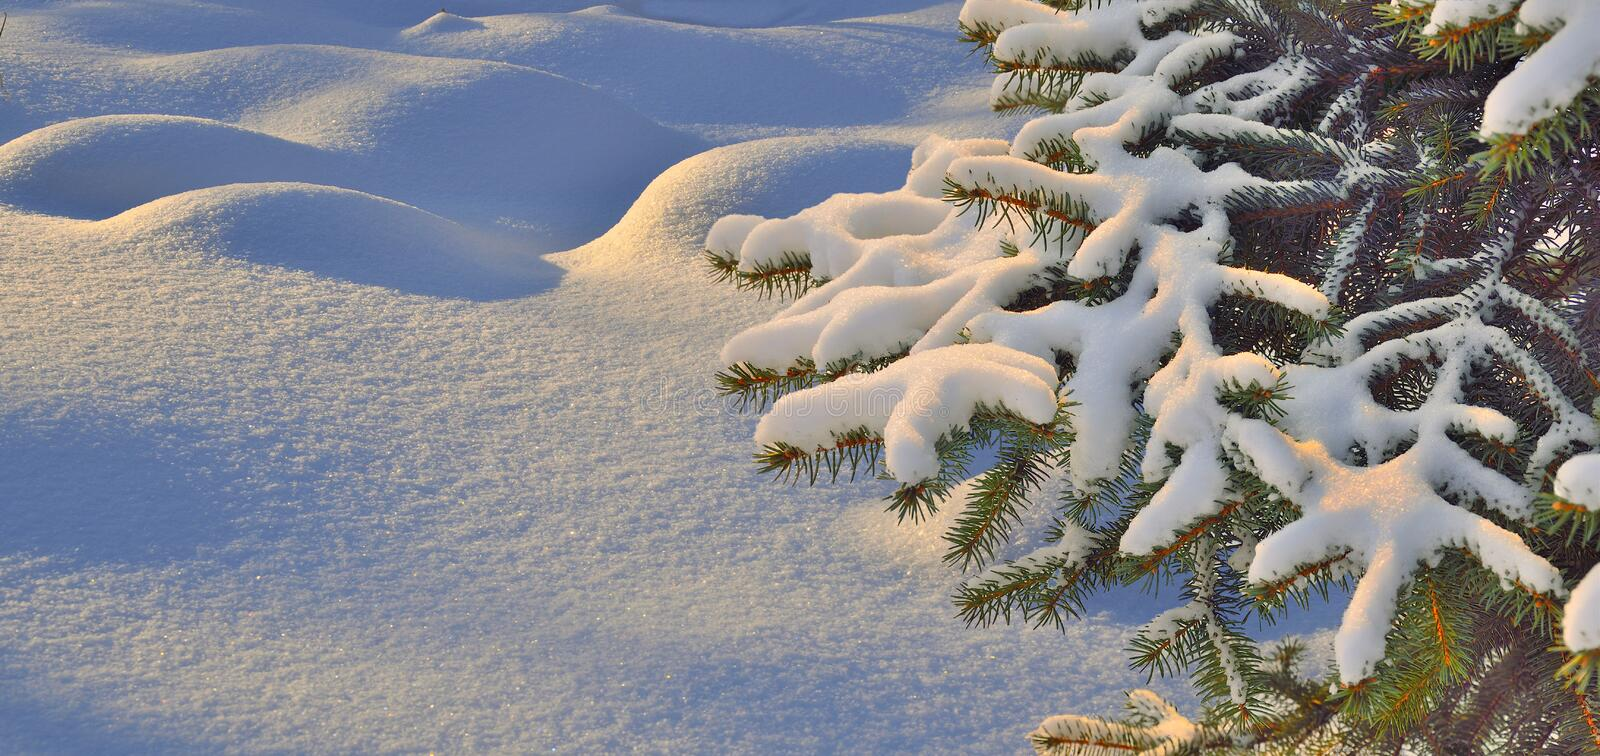 Snow covered branch of fir tree over a snowy wavy surface royalty free stock photography